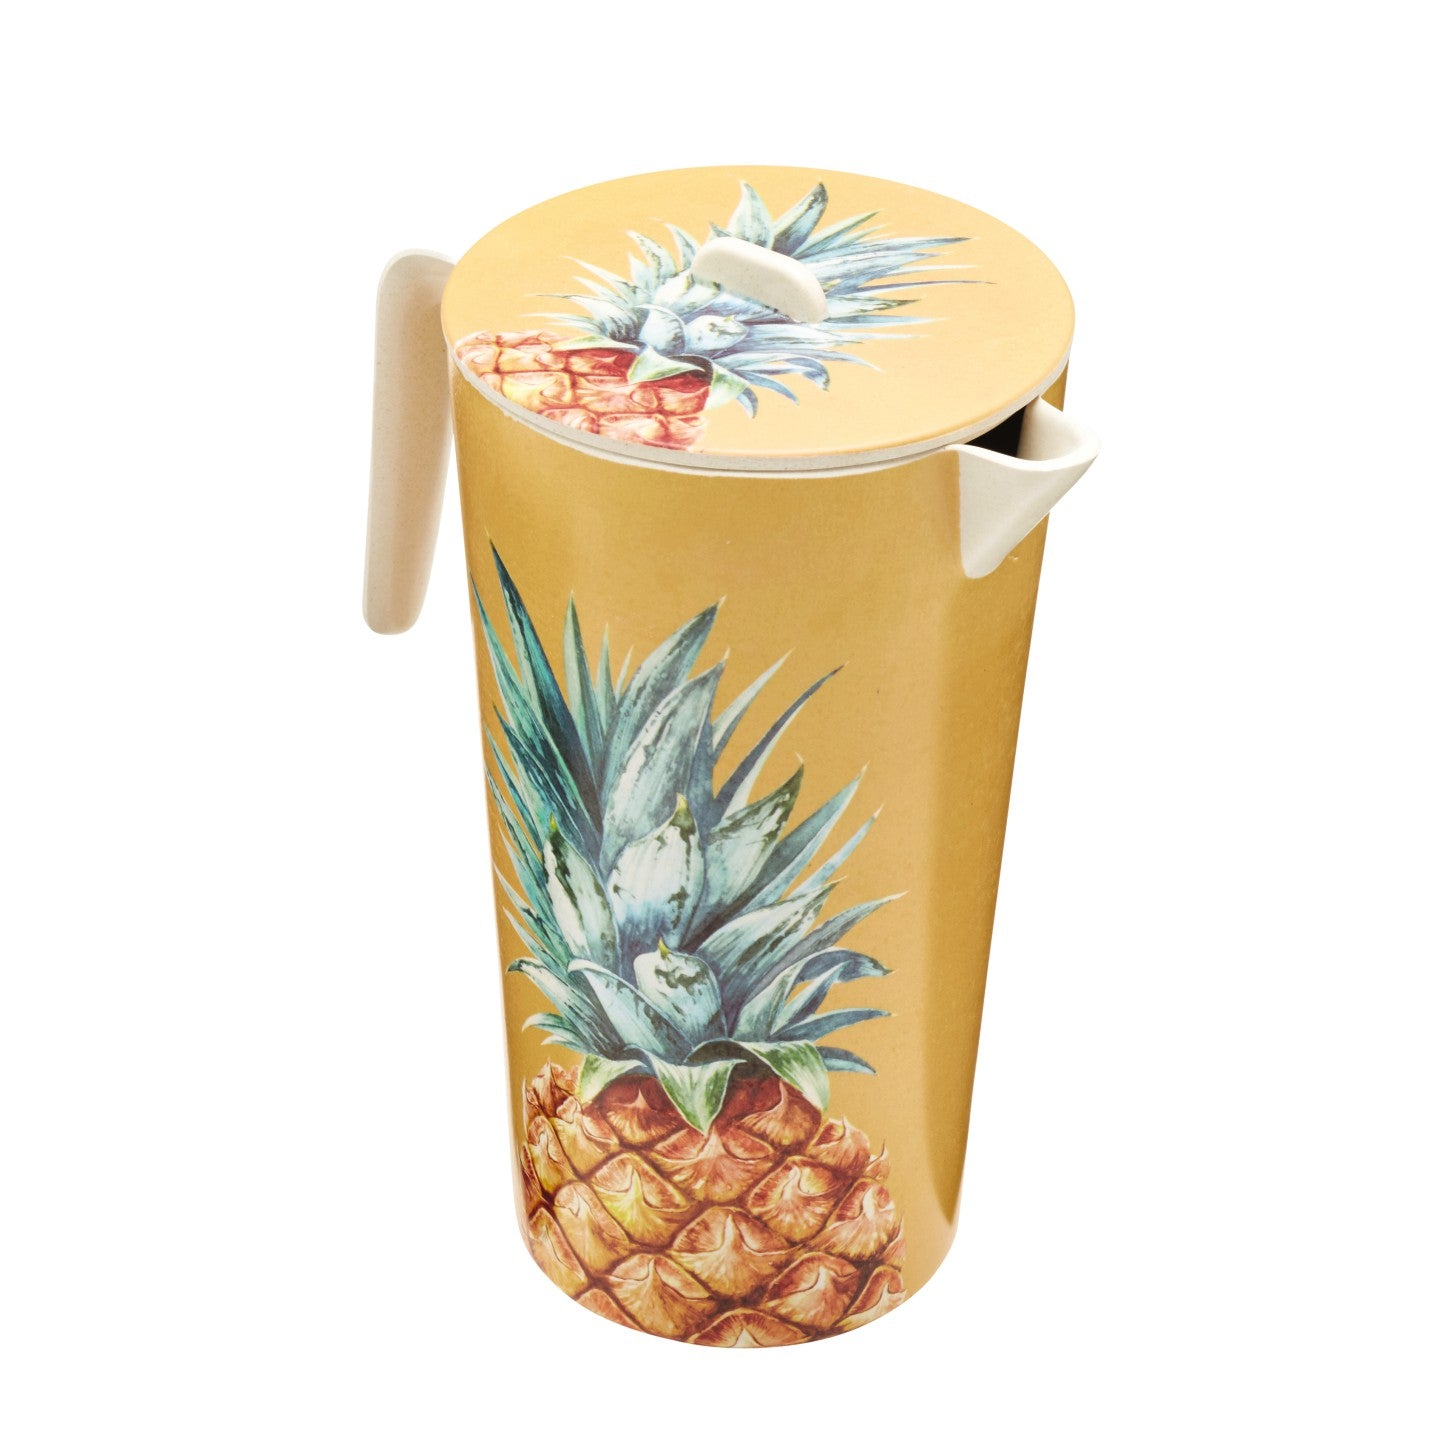 Bamboo Pineapple Jug